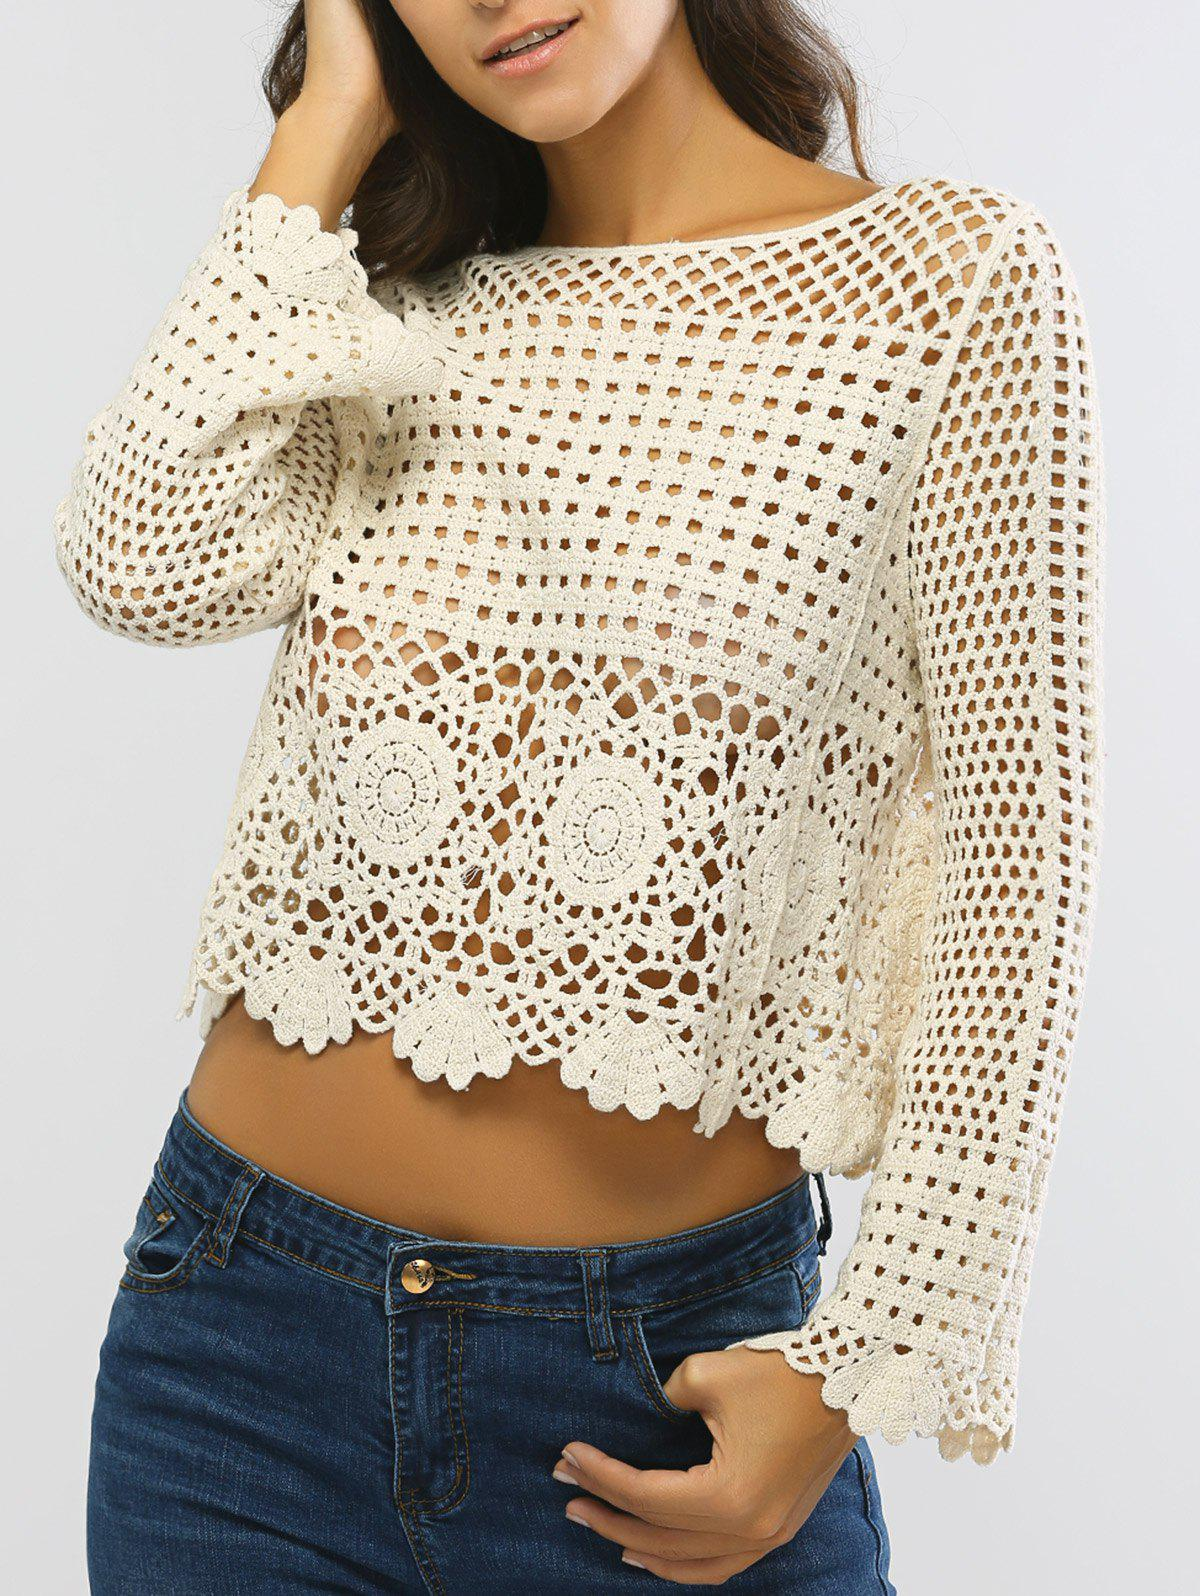 Laciness Hollow Out Cropped Knitted Top - BEIGE ONE SIZE